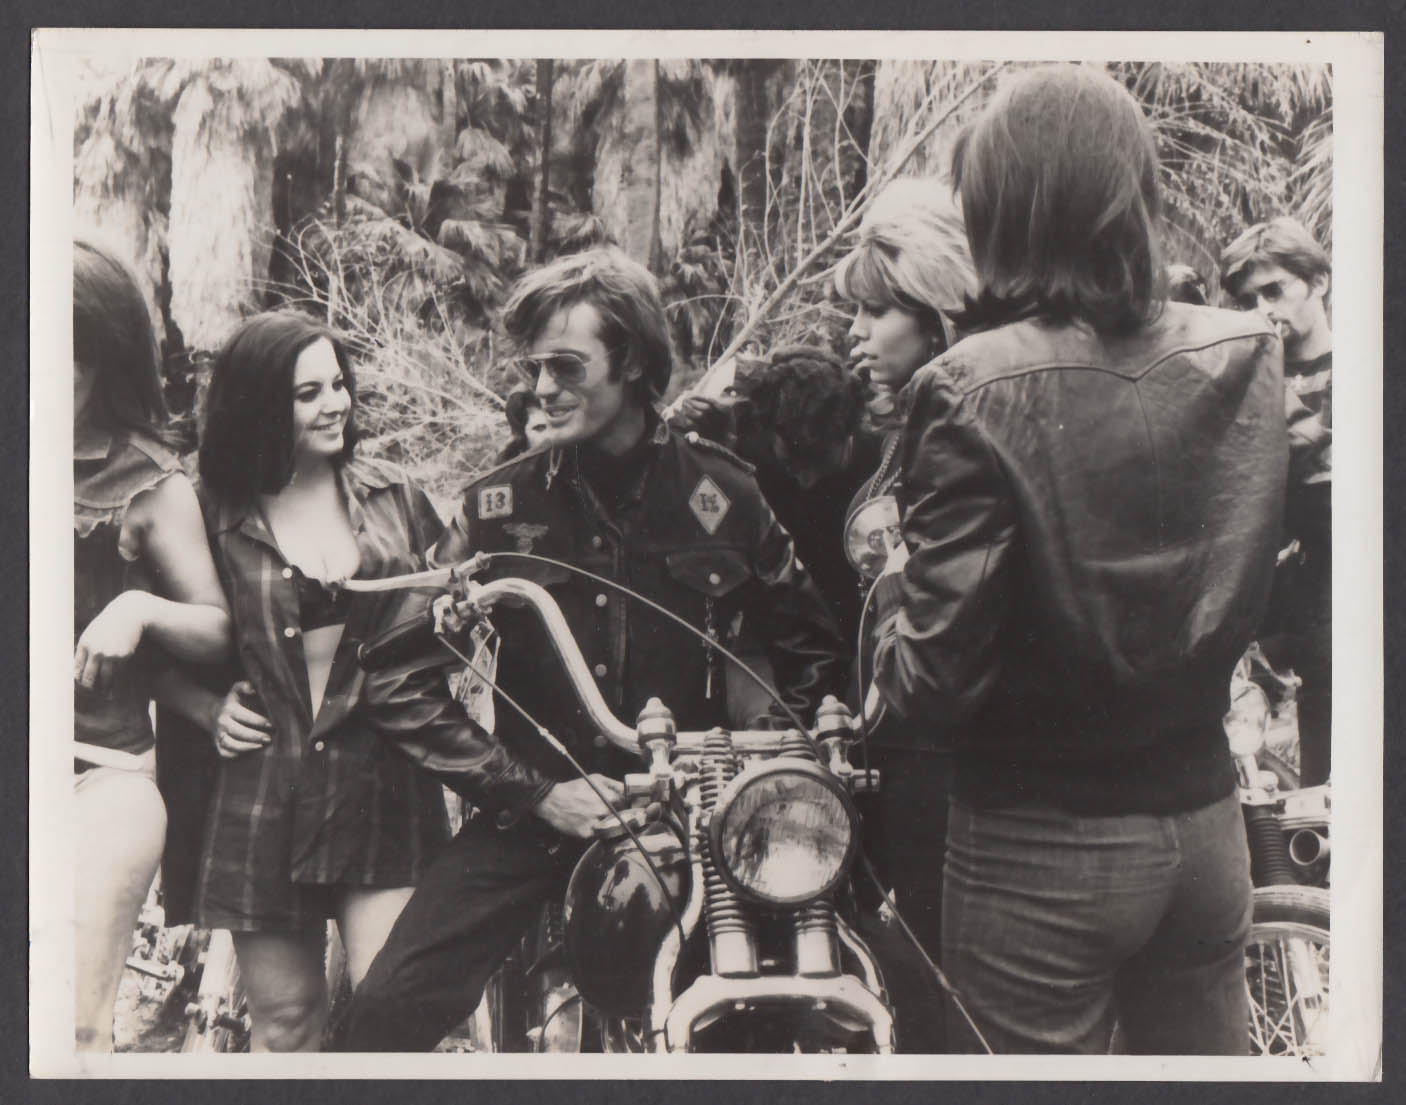 Image for Peter Fonda in The Wild Angels 8x10 publicity photo 1966